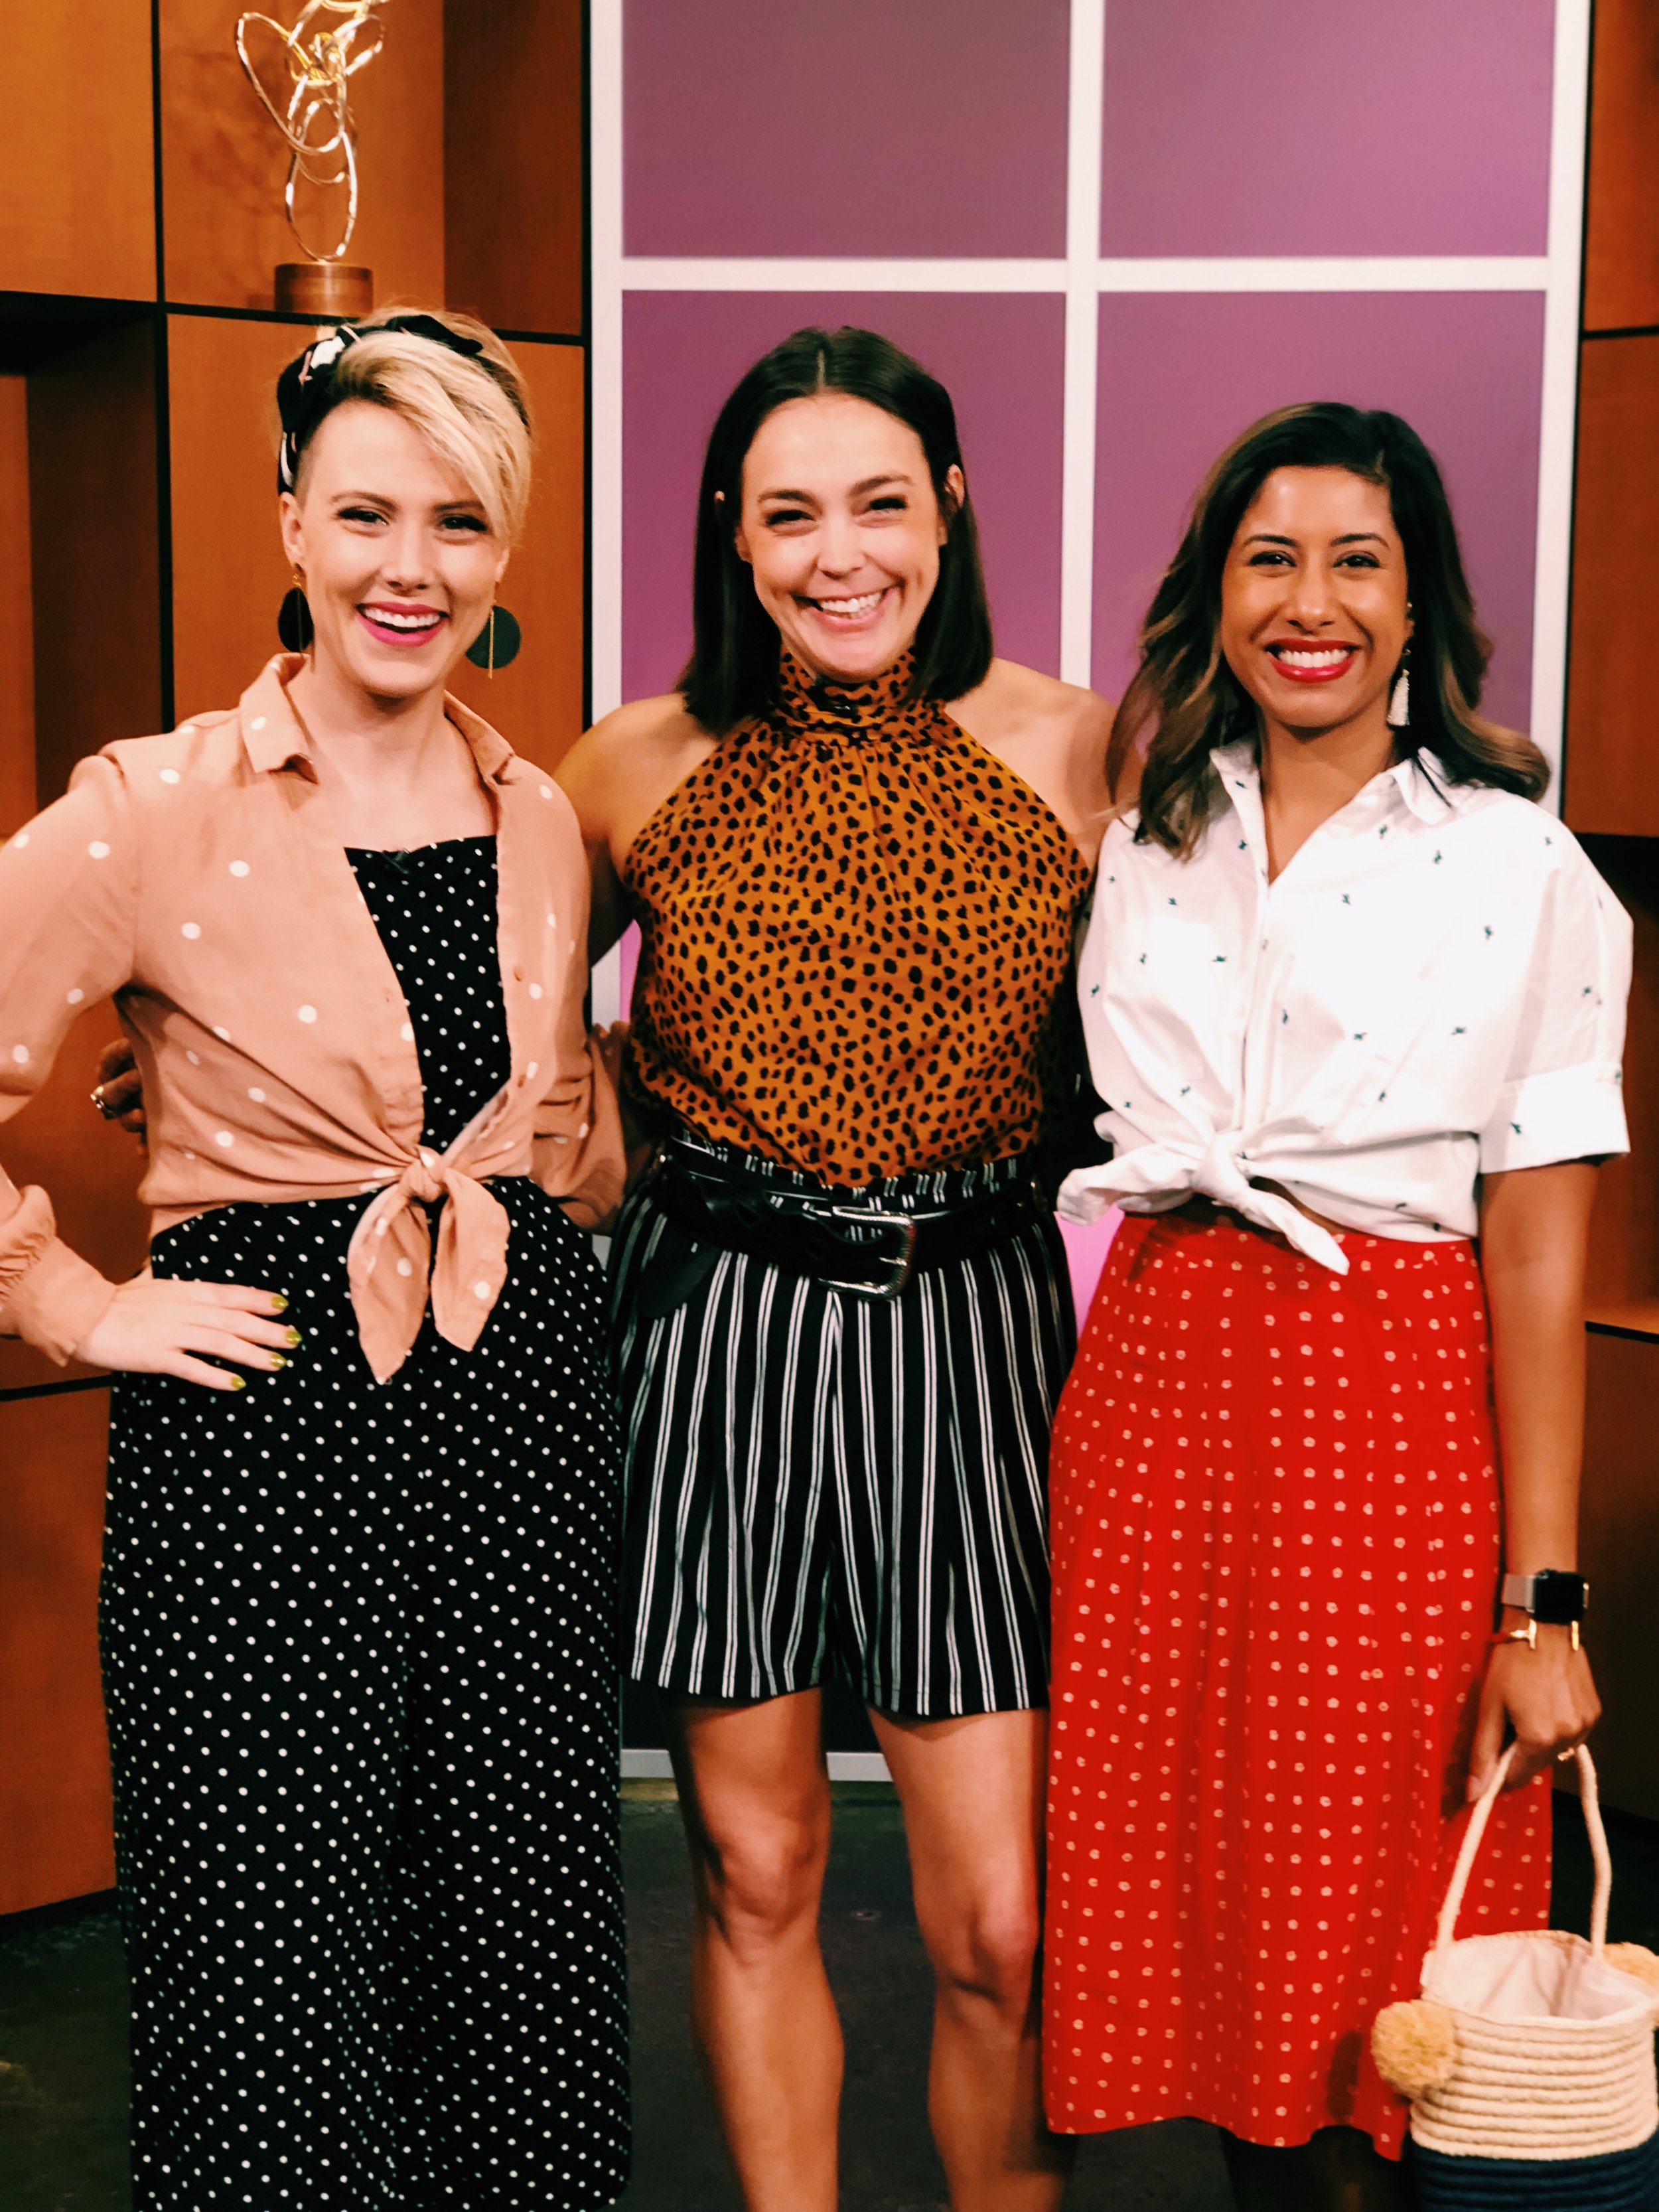 Austin's best personal stylist, Raquel Greer Gordian, stops by Studio 512 to share three easy ways to mix prints and match patterns in your office and weekend outfits.